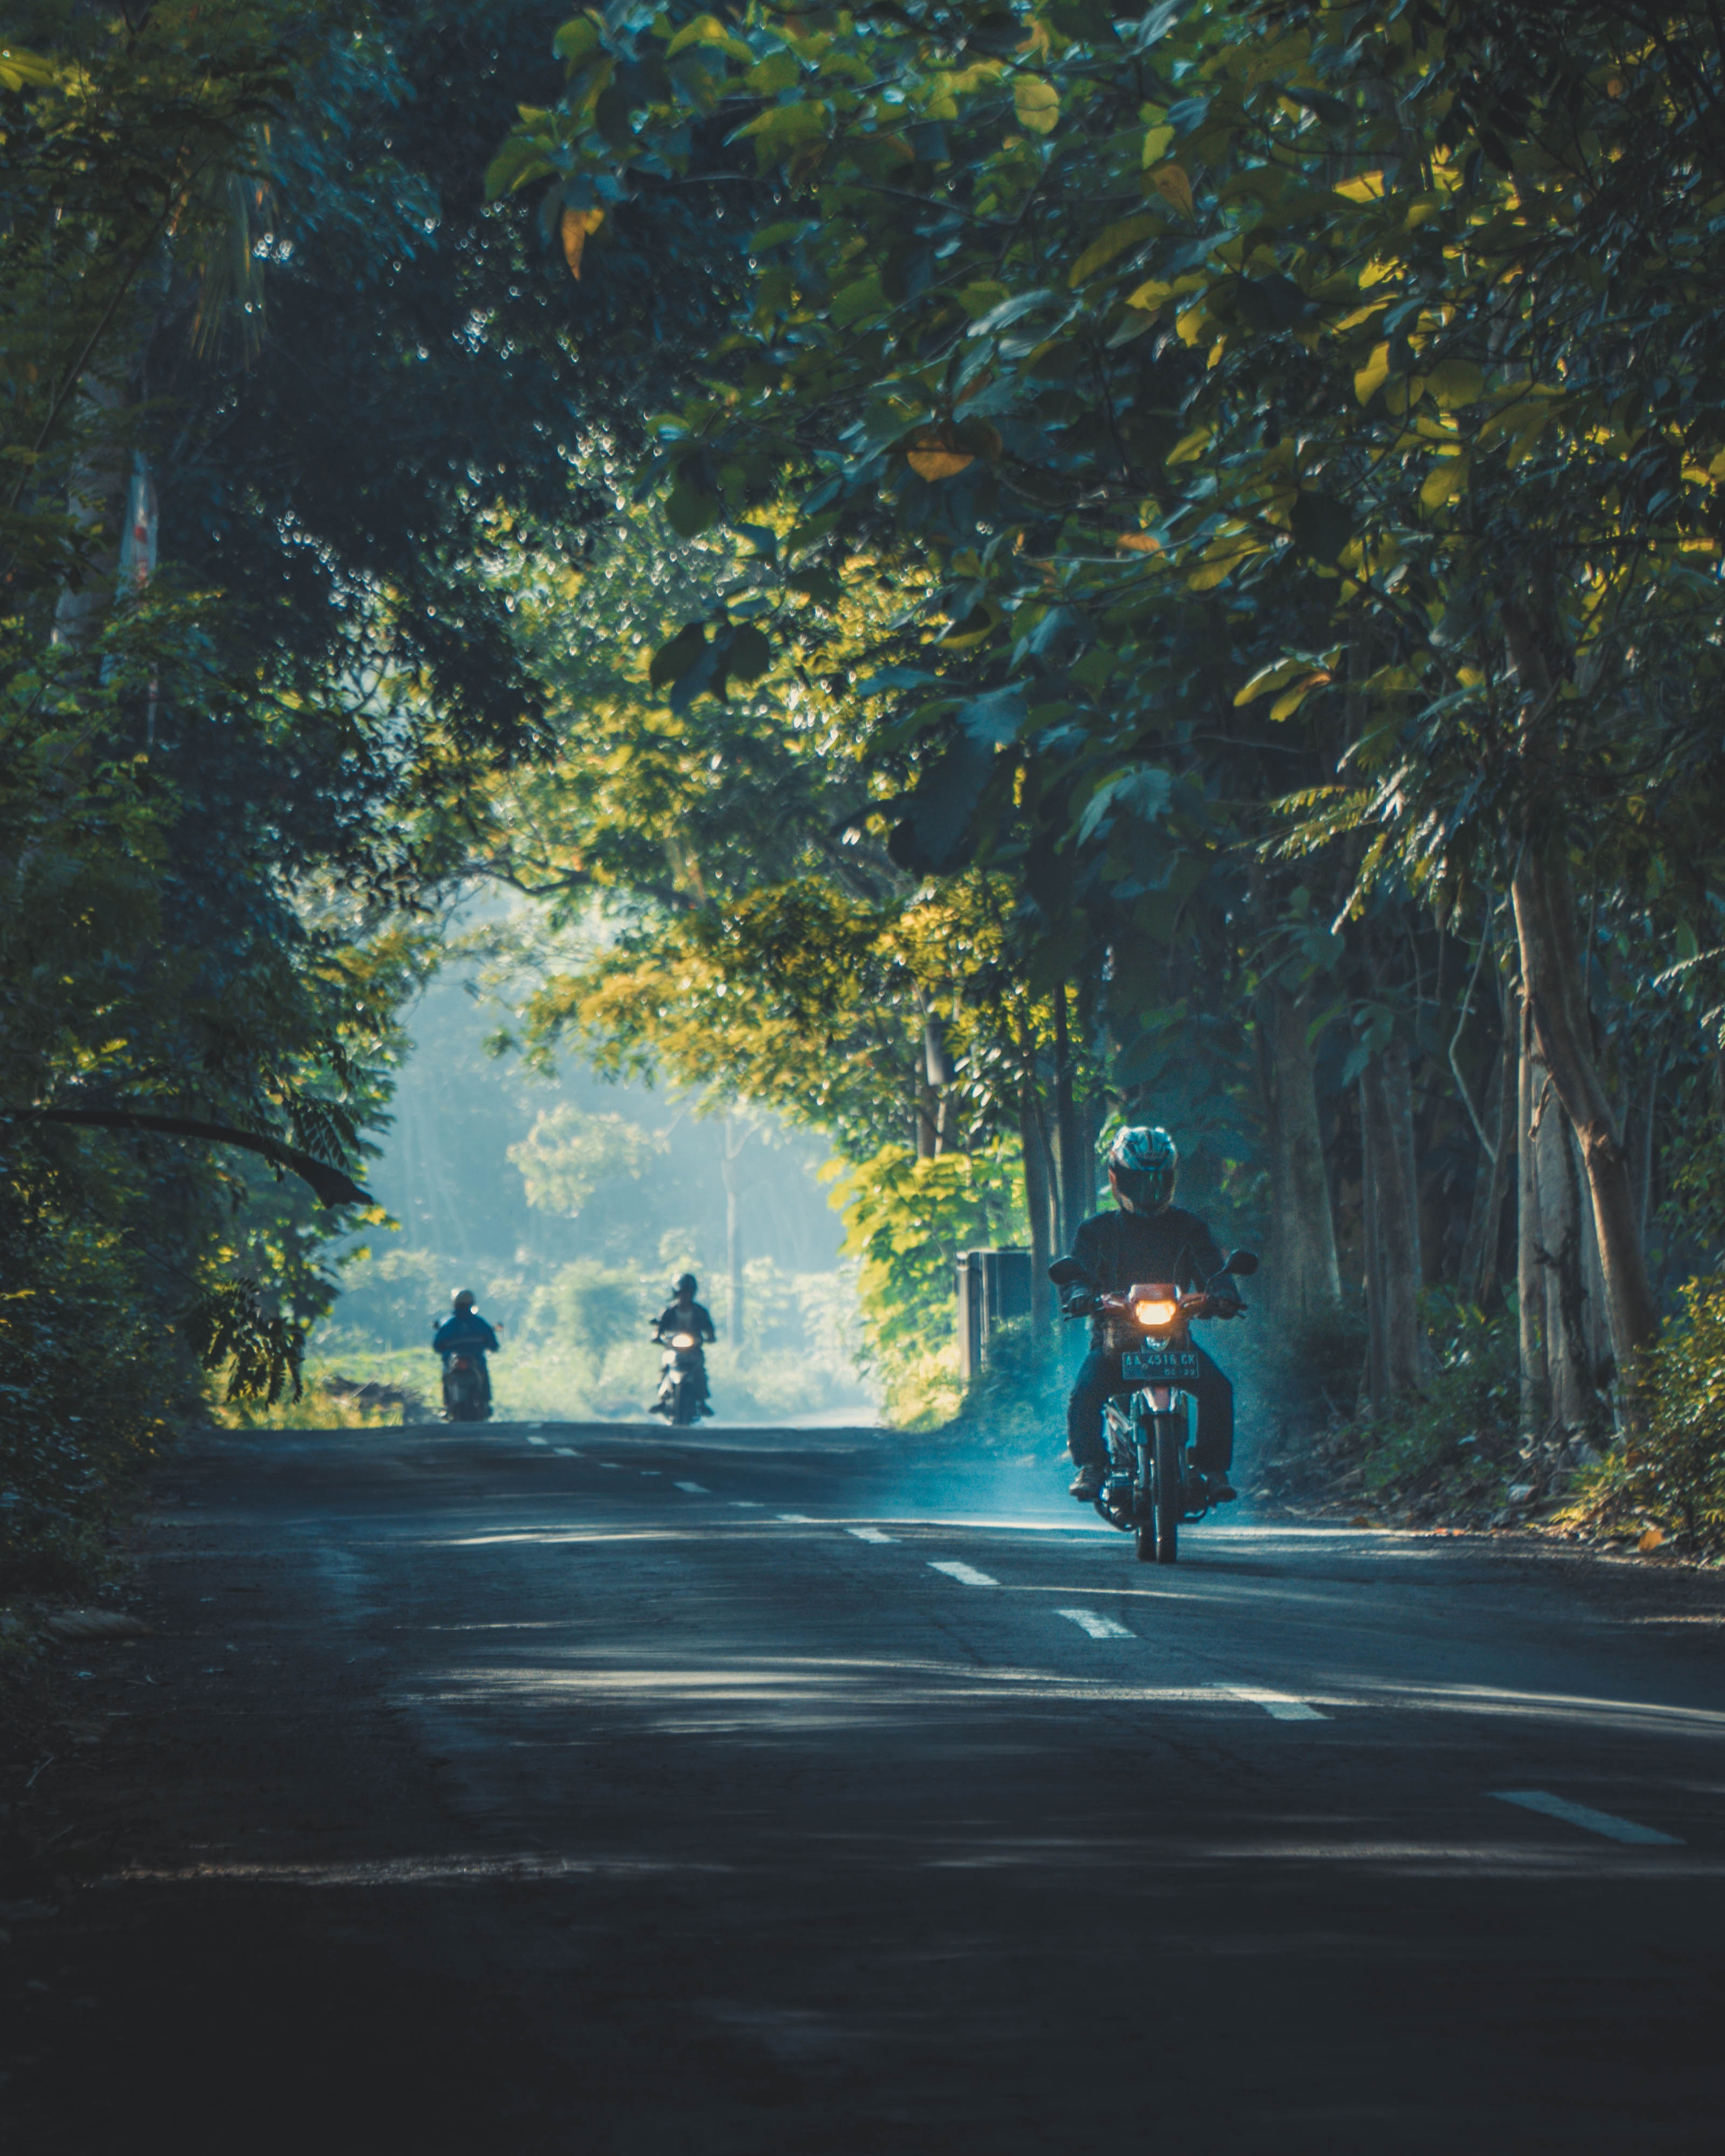 person riding on motorcycle on road between trees